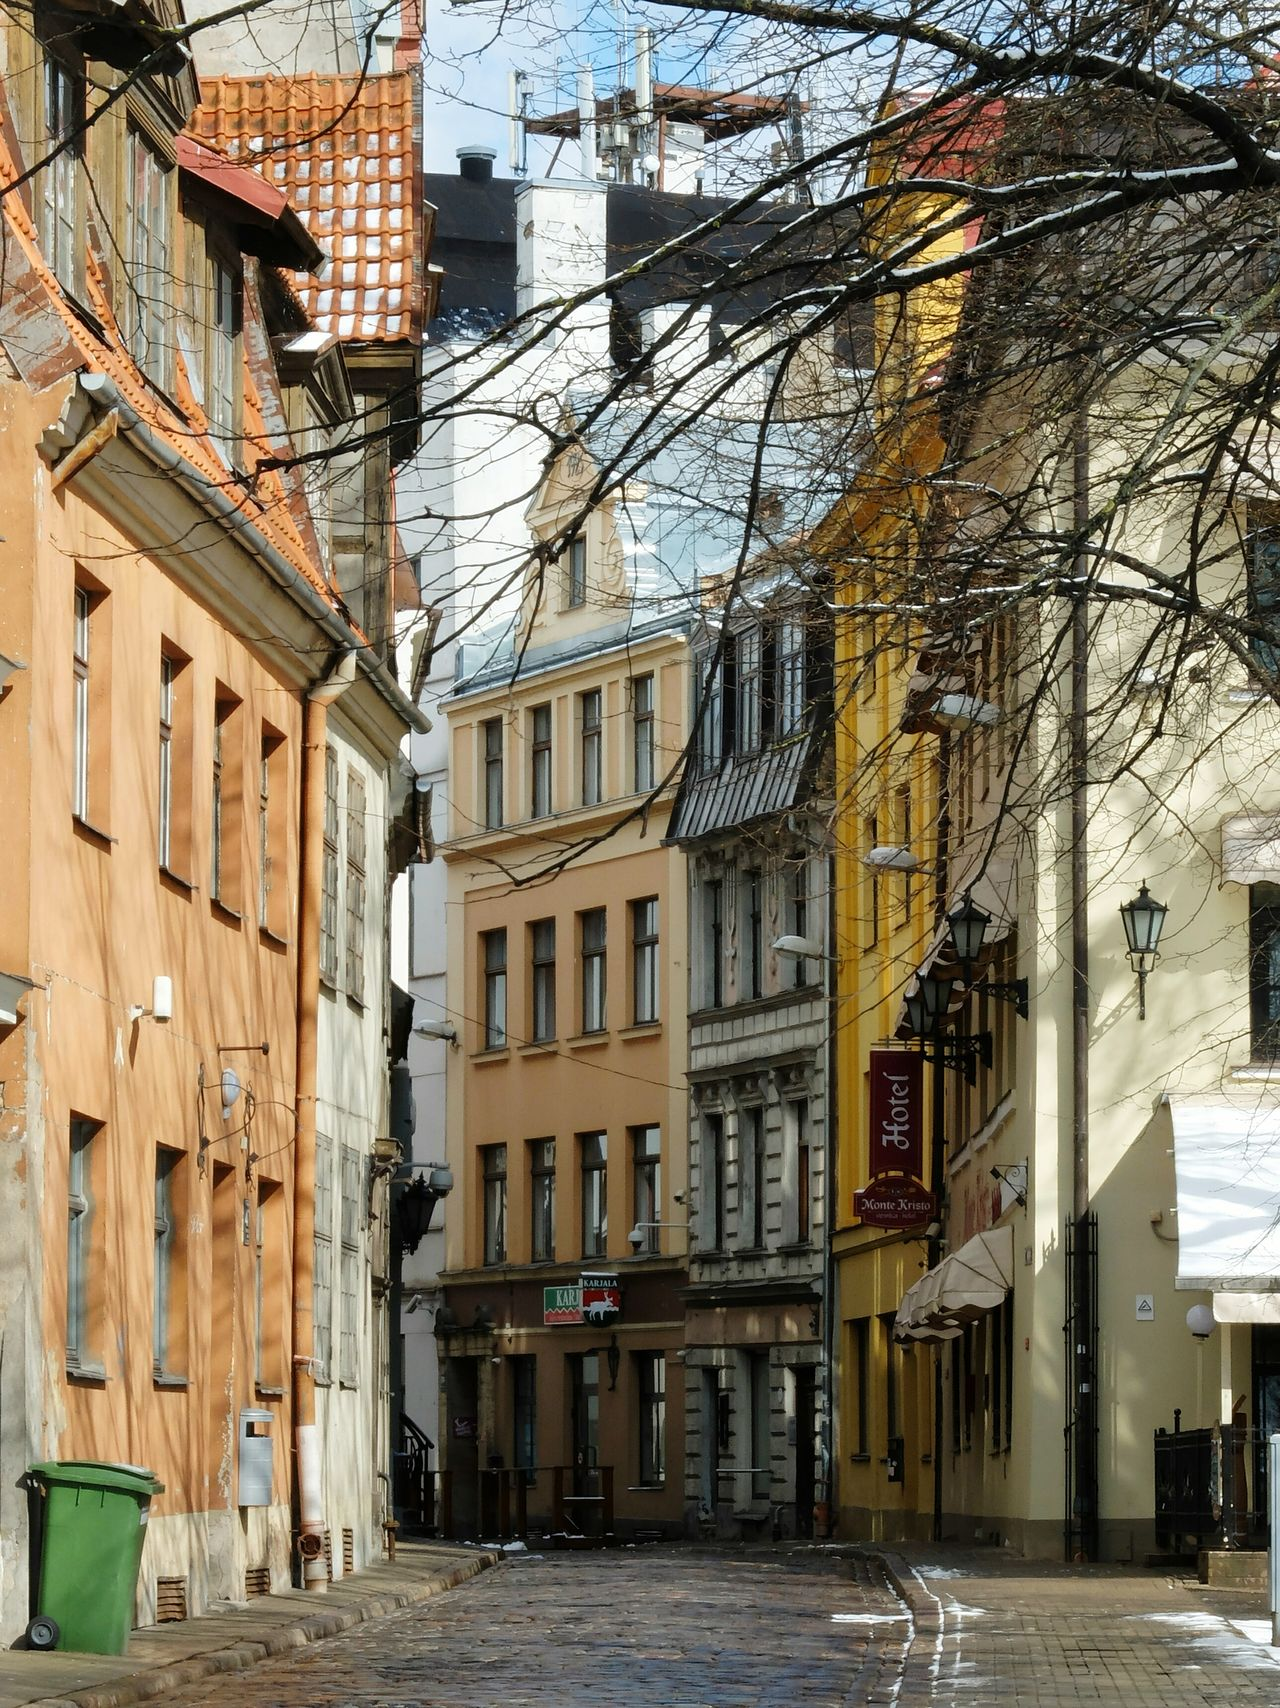 Architecture Building Exterior Built Structure Day City No People Residential Building Outdoors Low Angle View Sky Water Tree The Street Photographer - 2017 EyeEm Awards Walking Around City Riga Riga Old Town Spring Snow Cold Street Life City View  Latvia